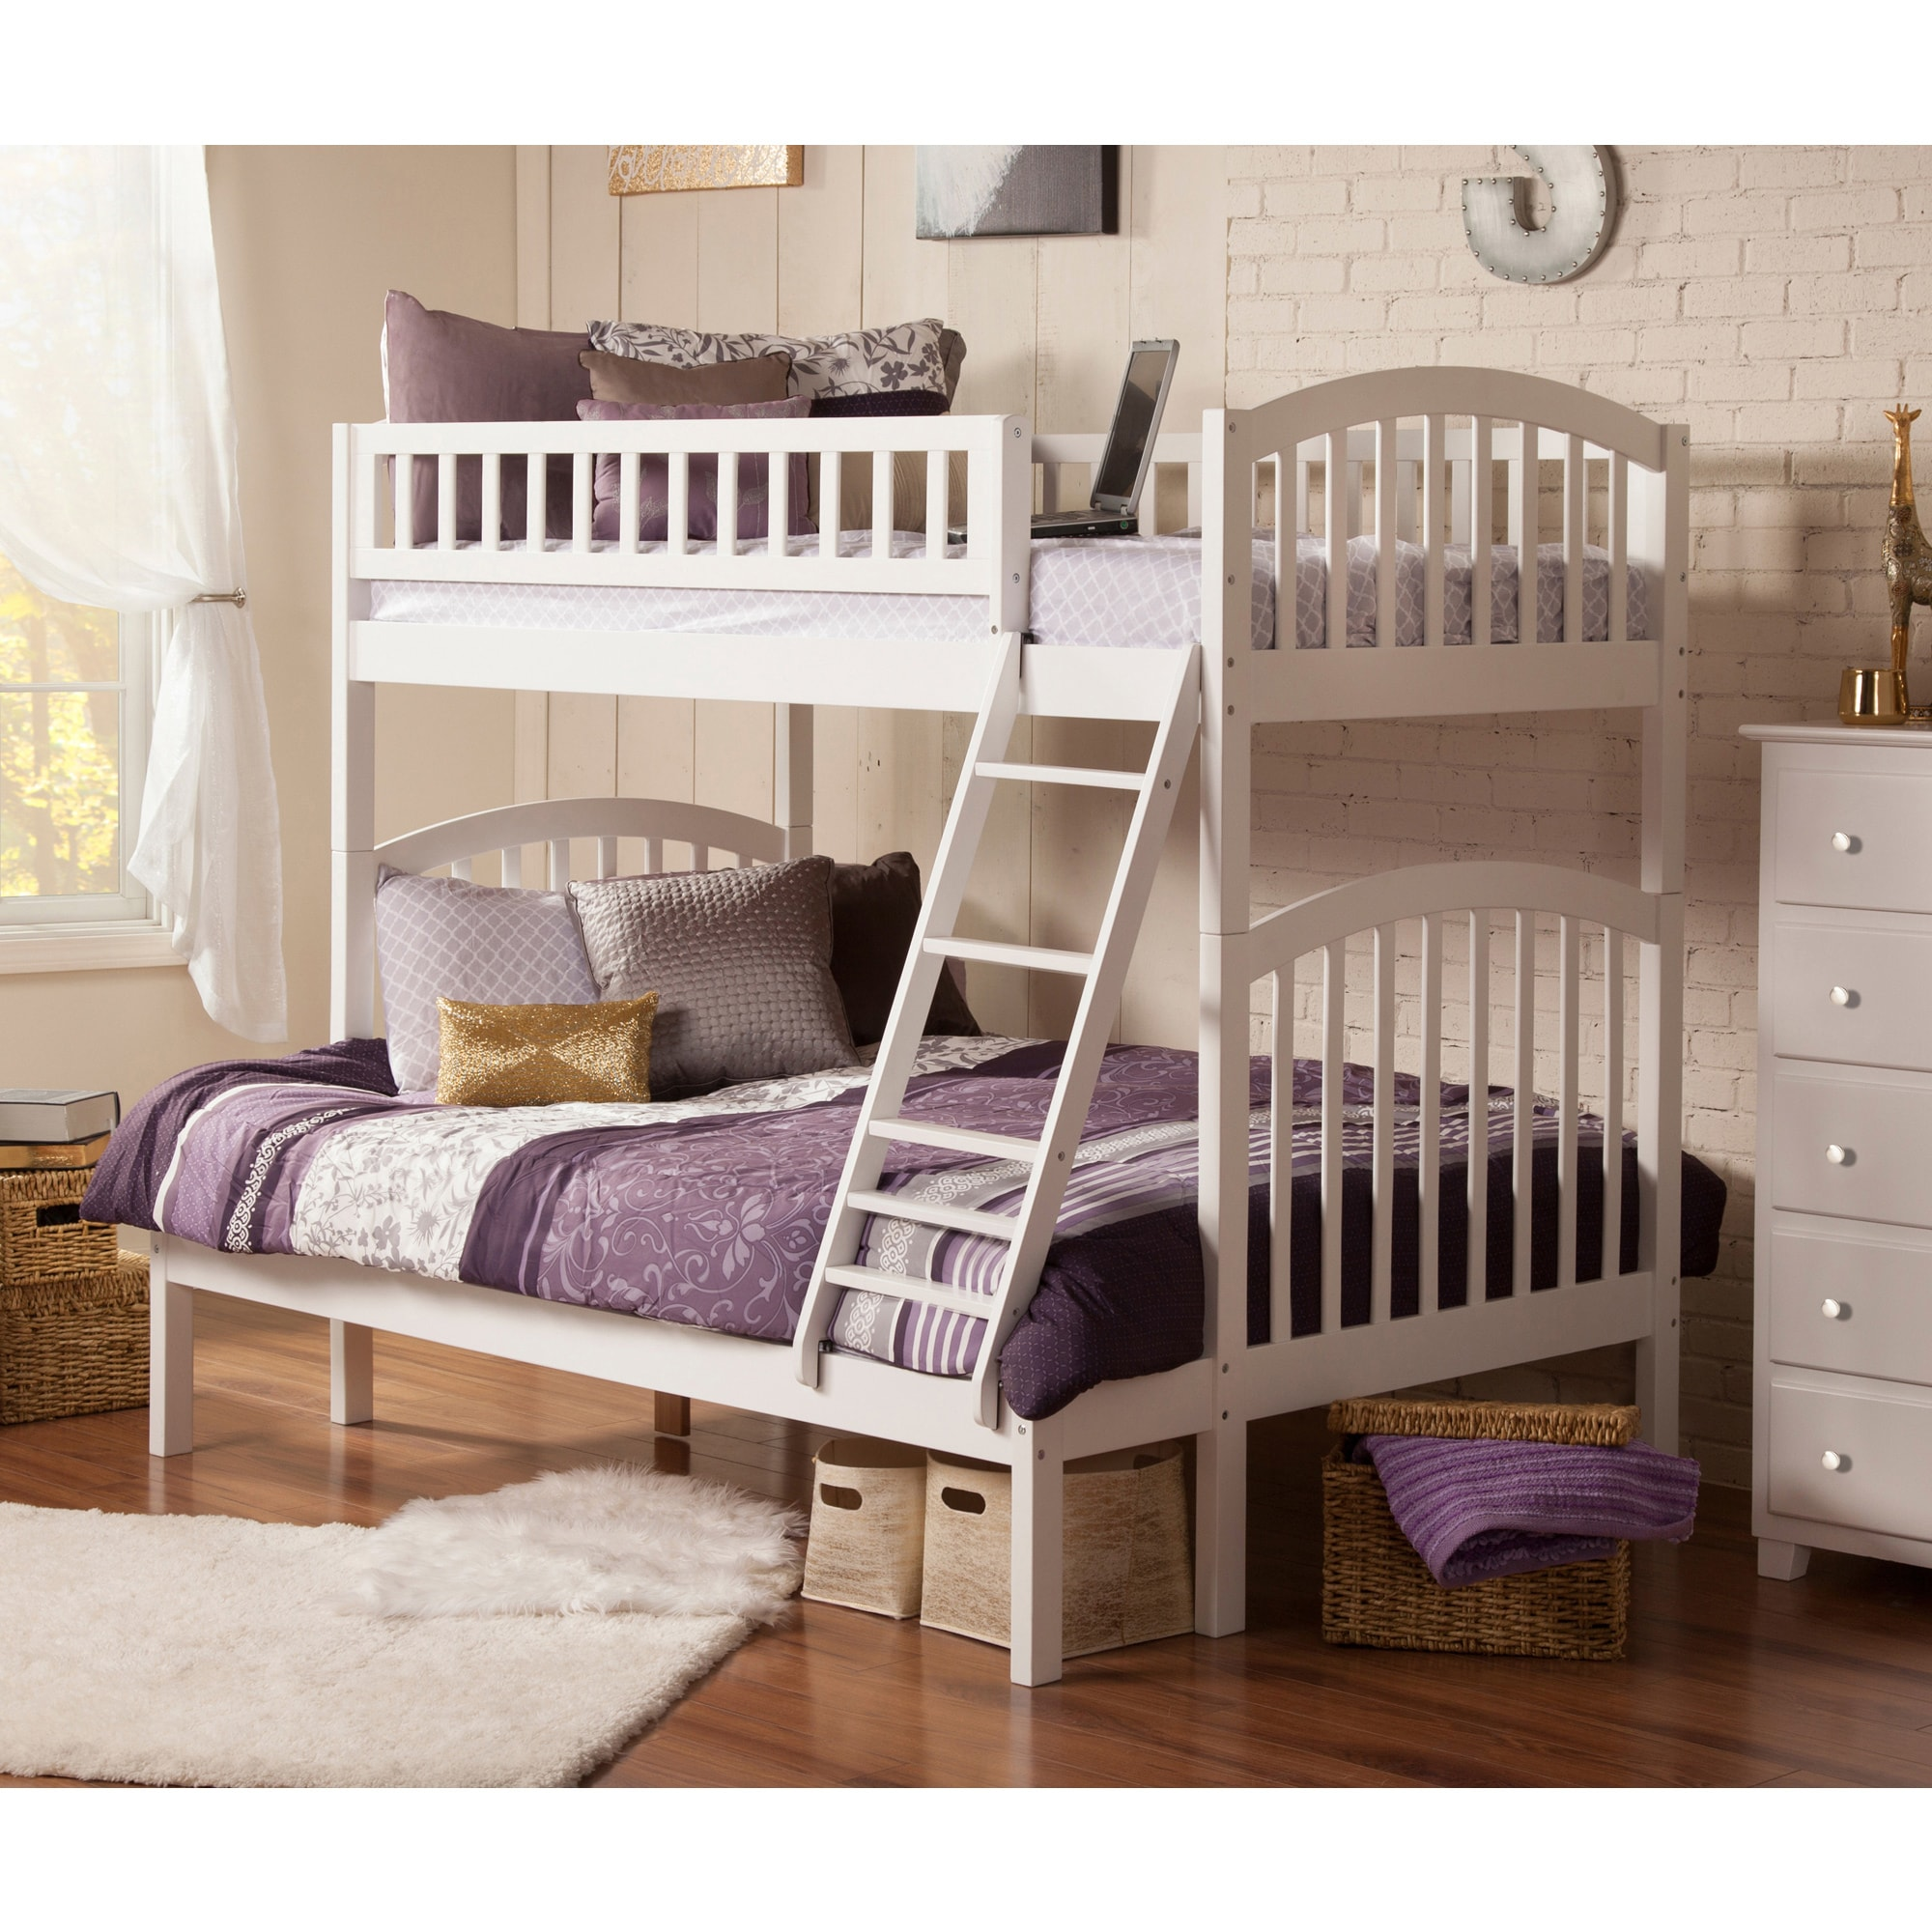 Atlantic Furniture Richland White Wood Twin-over-full Bunk Bed